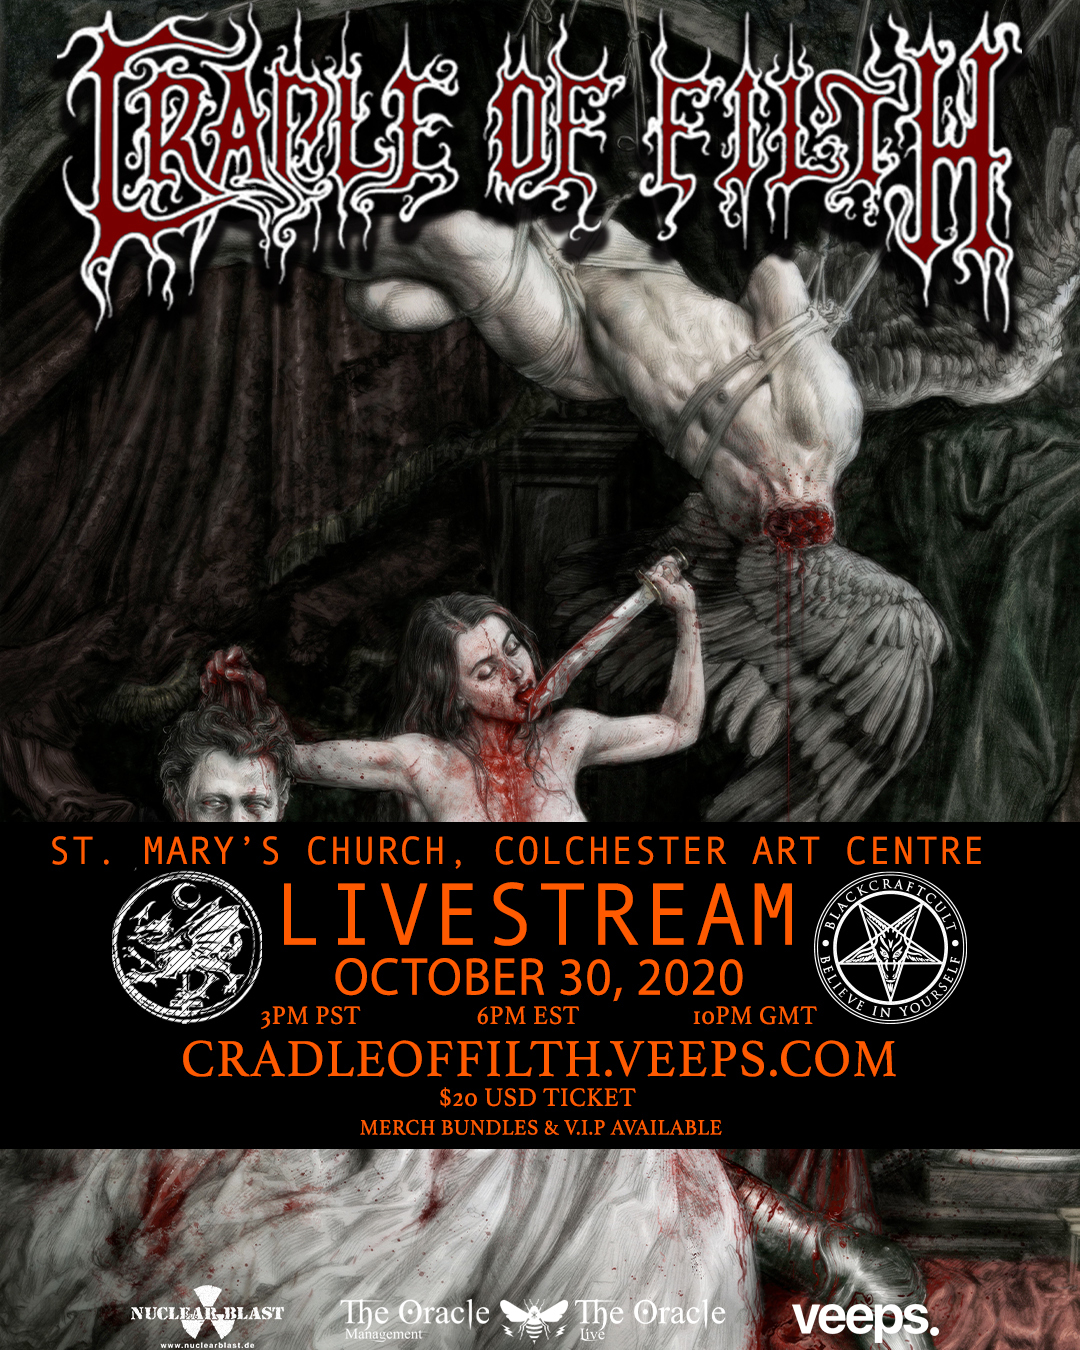 Church Street Halloween 2020 CRADLE OF FILTH   Announce Halloween Live Stream Concert From St